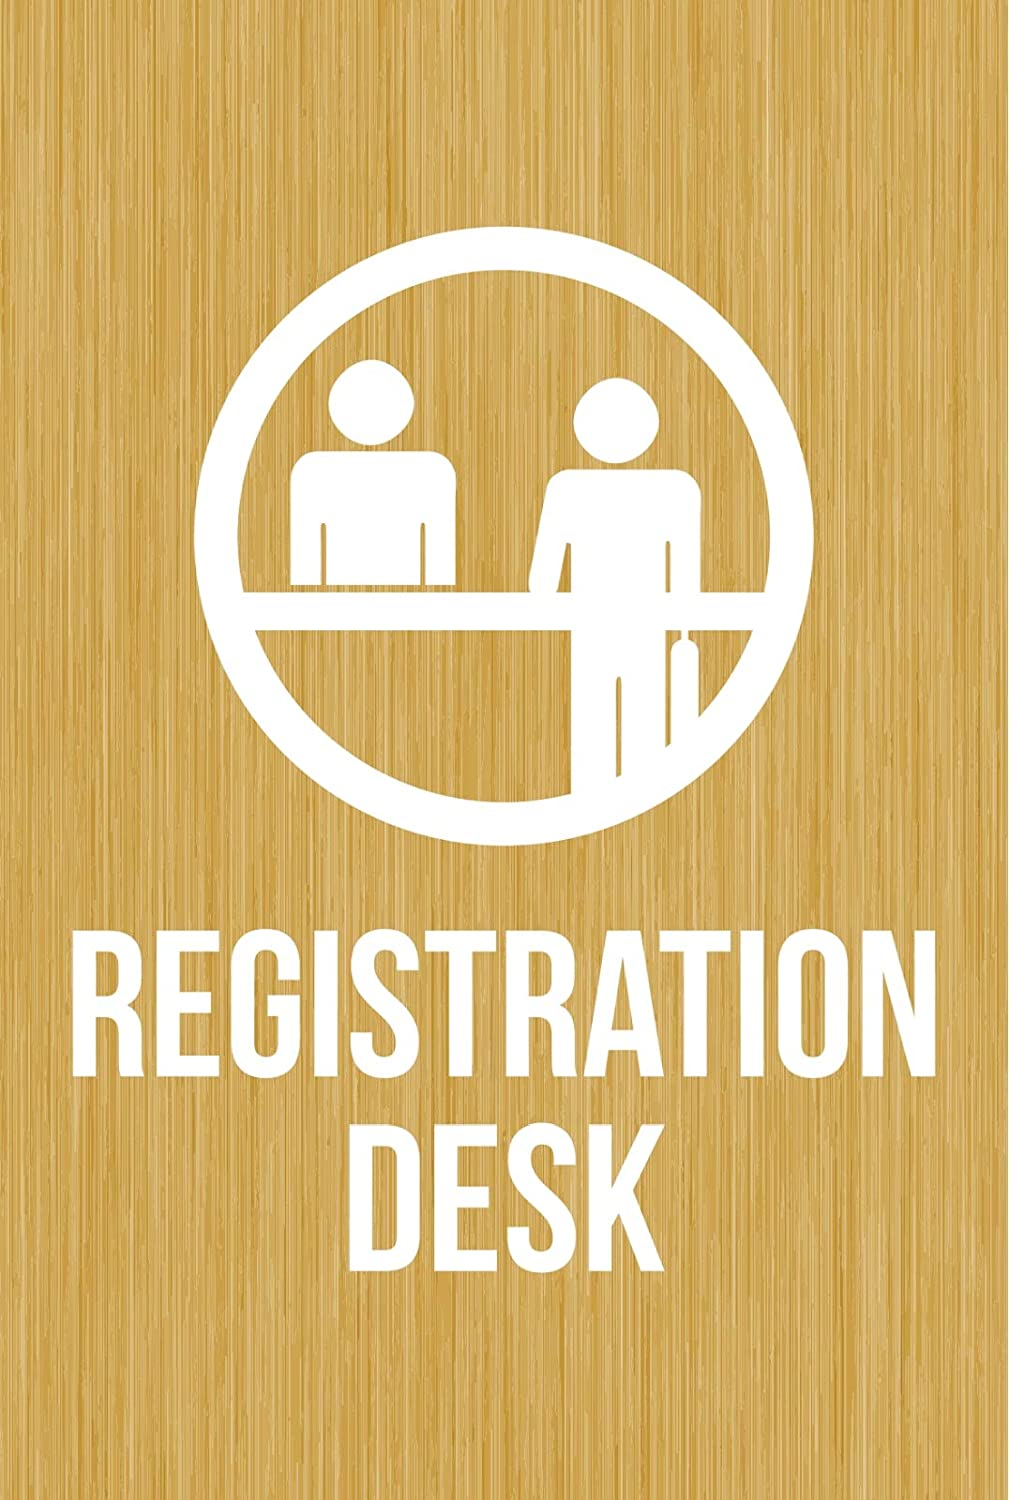 iCandy Products Inc Registration Desk Hotel Business Office Building Sign 12x18 Inches, Bamboo, Metal